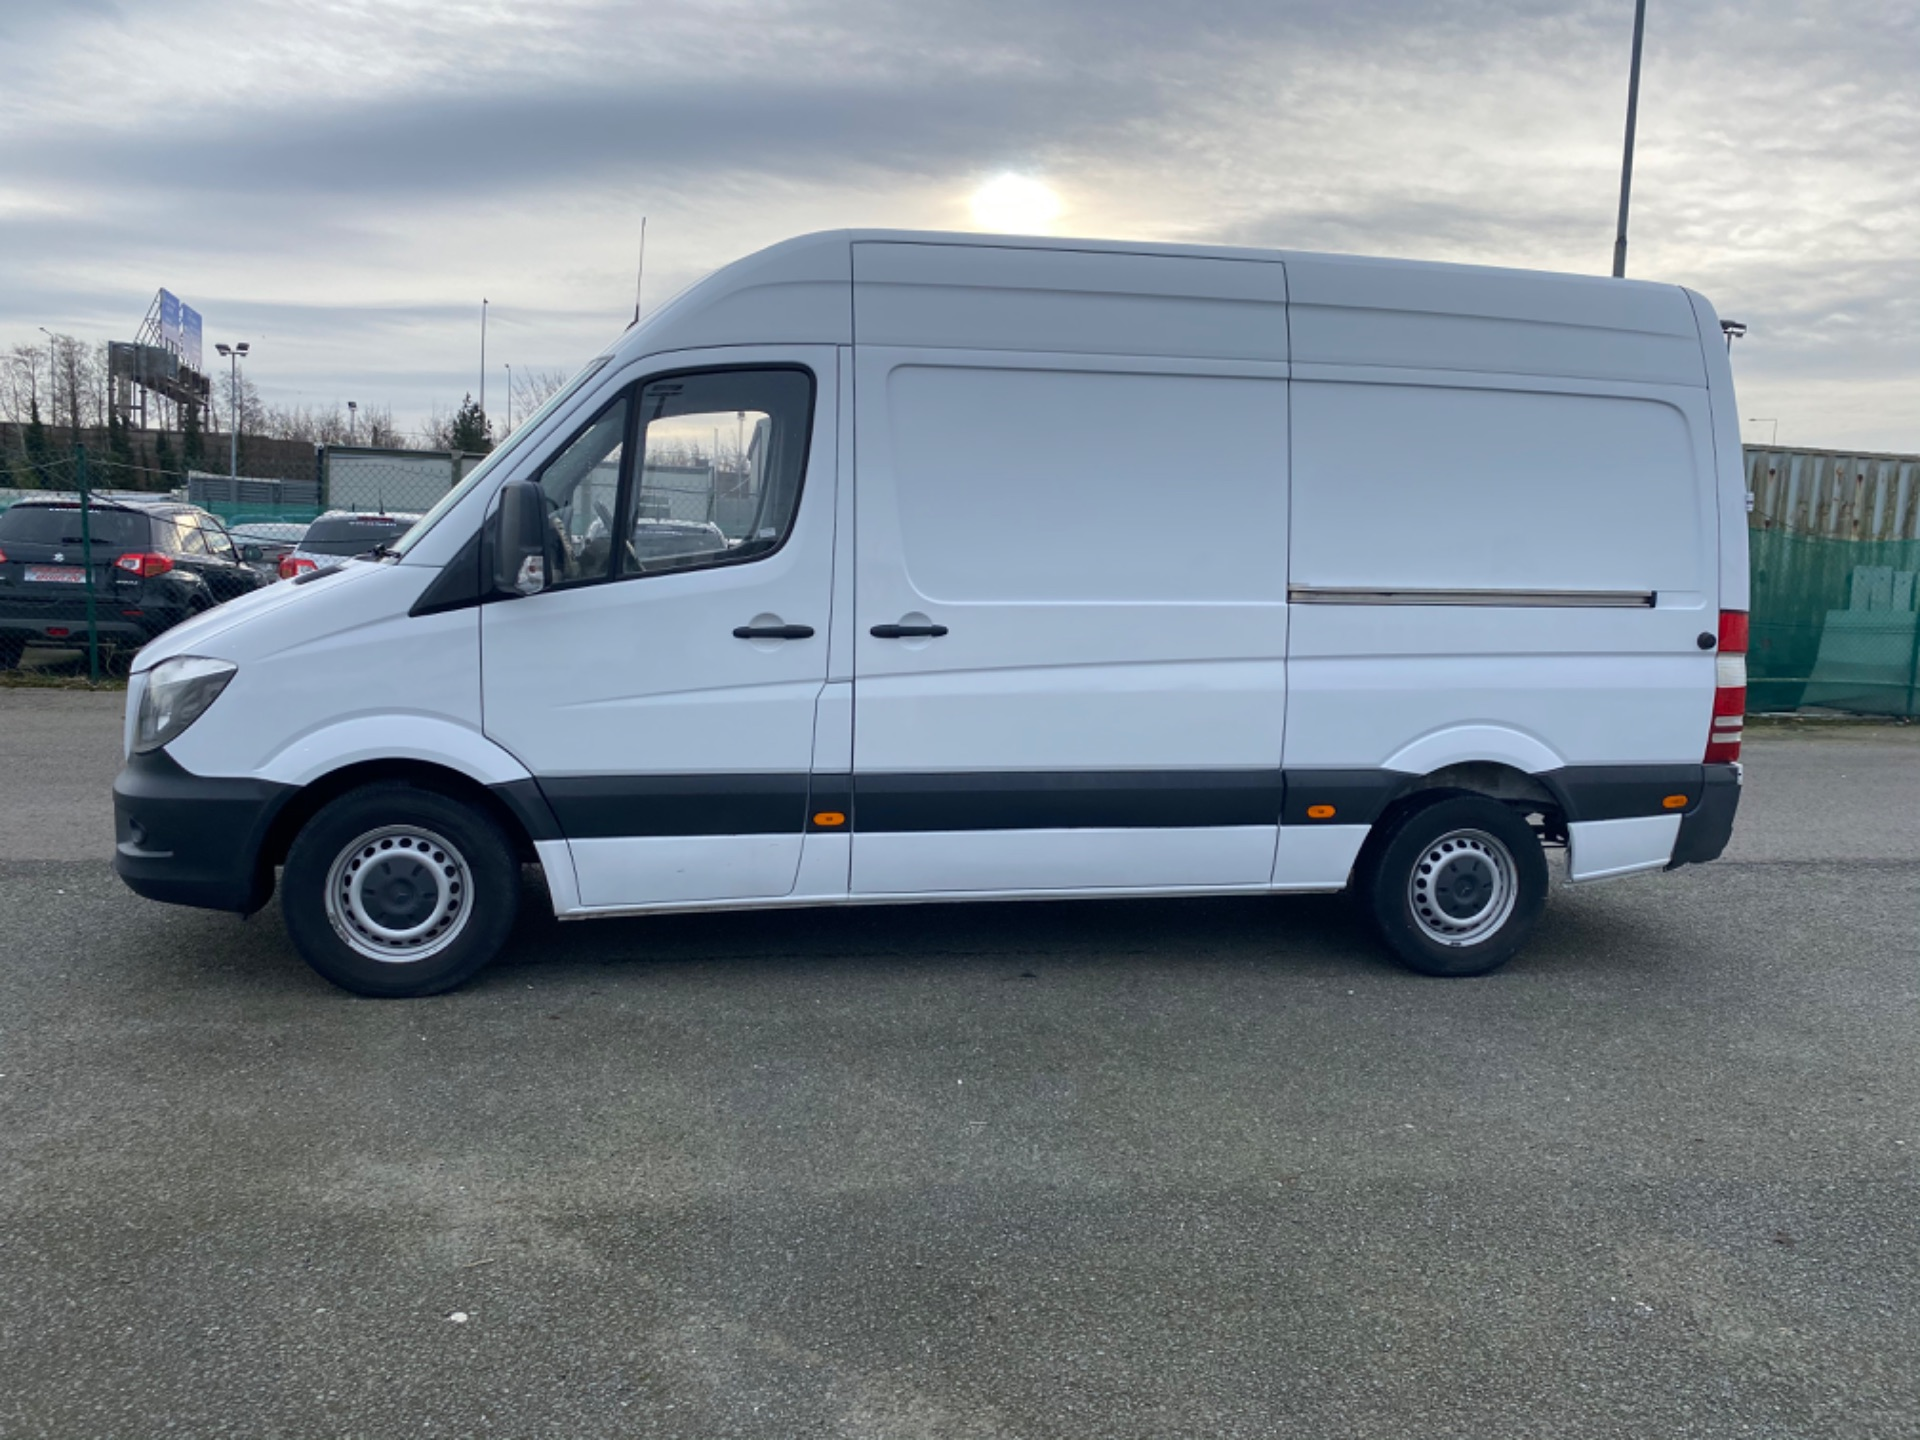 2017 Mercedes-Benz Sprinter 314/36 EU6 6DR (172D9018) Thumbnail 4